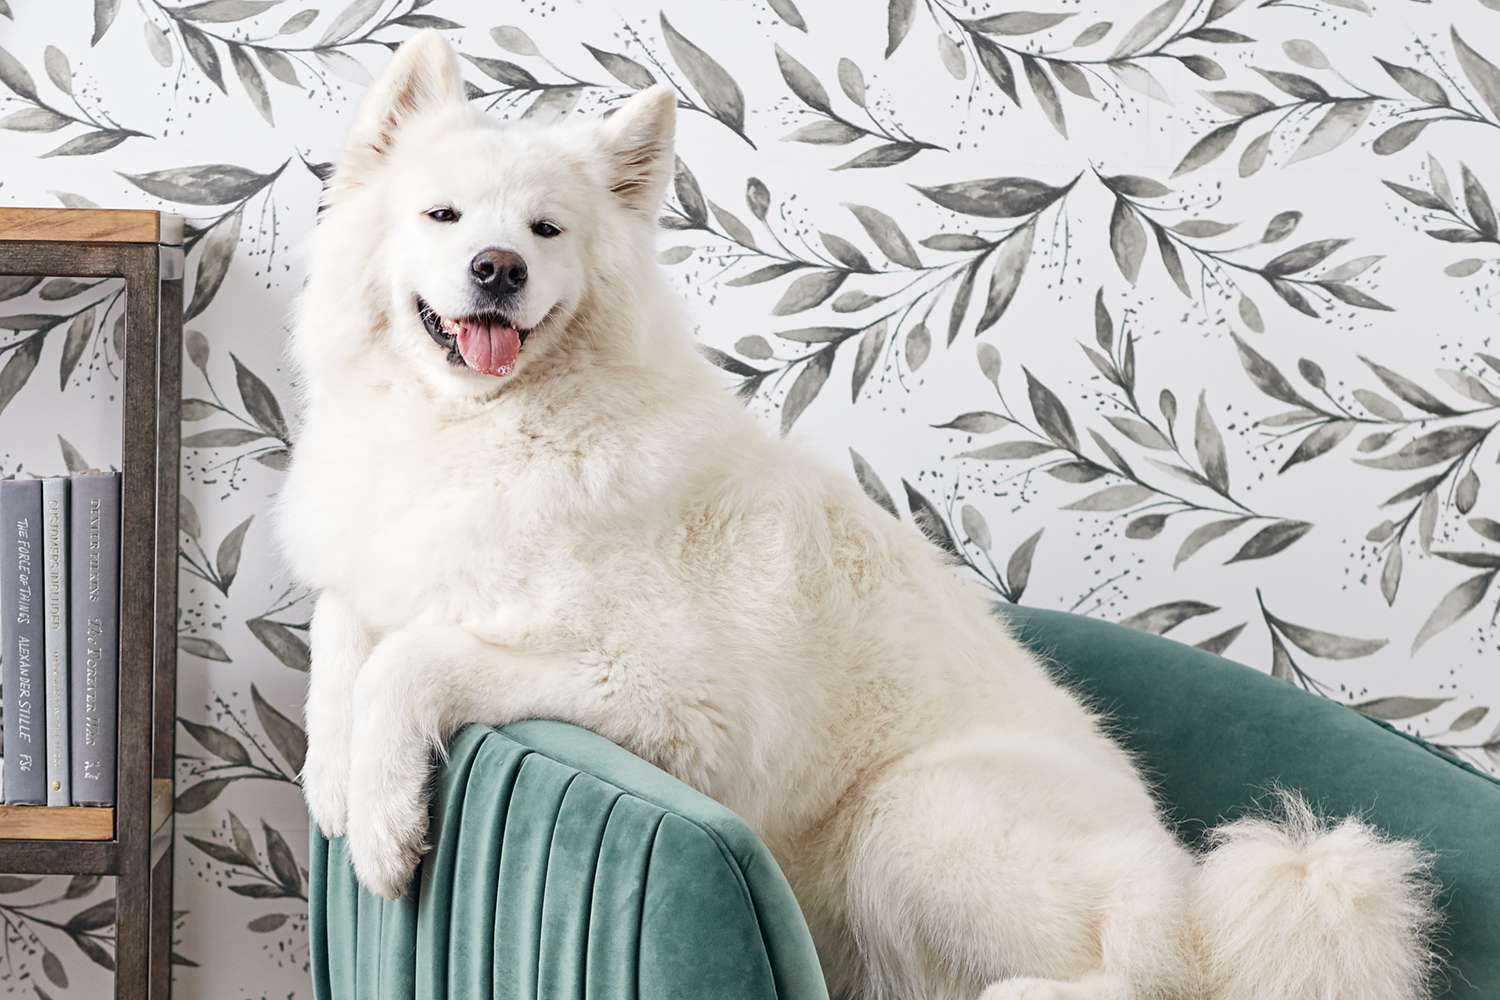 A samoyed on a chair